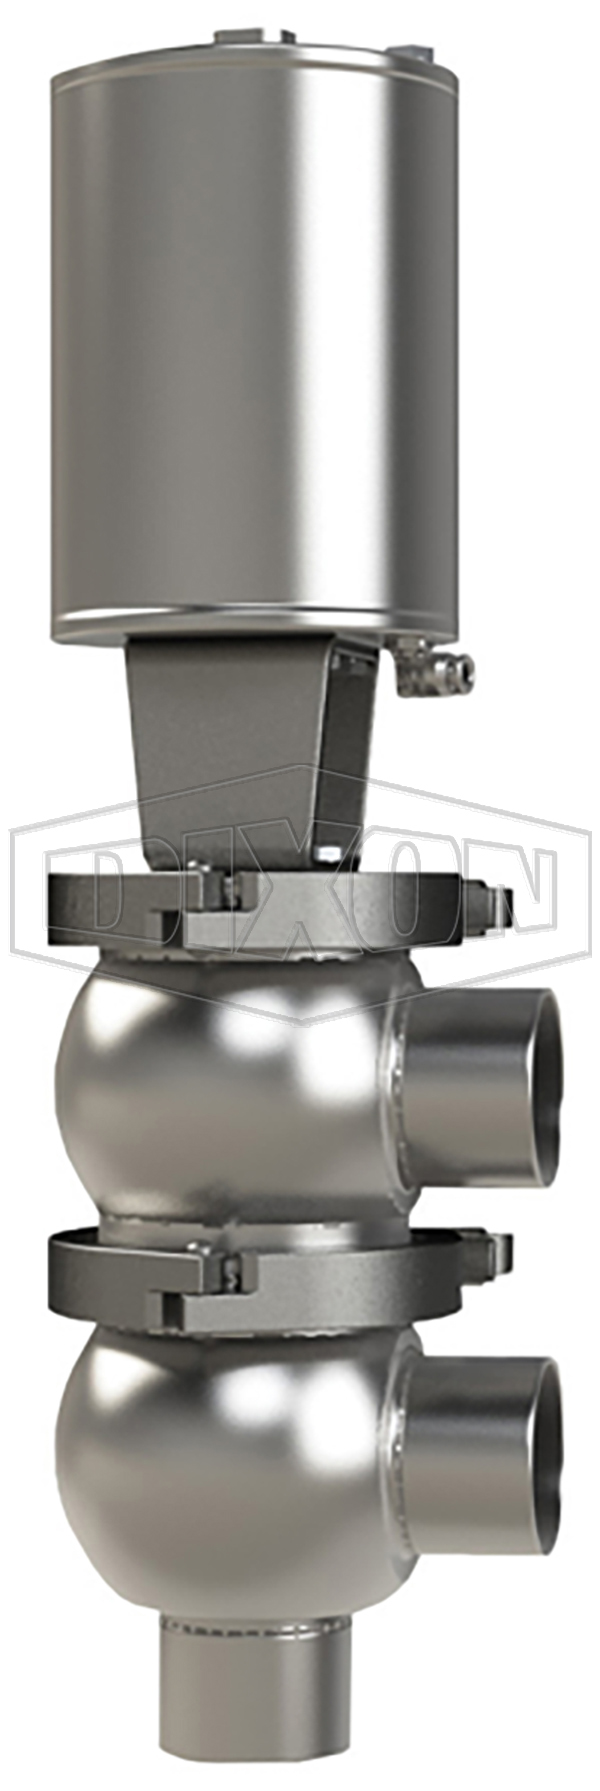 SSV Series Single Seat Valve, Divert F Body, Weld, Spring Return Actuator (Air-To-Lower)